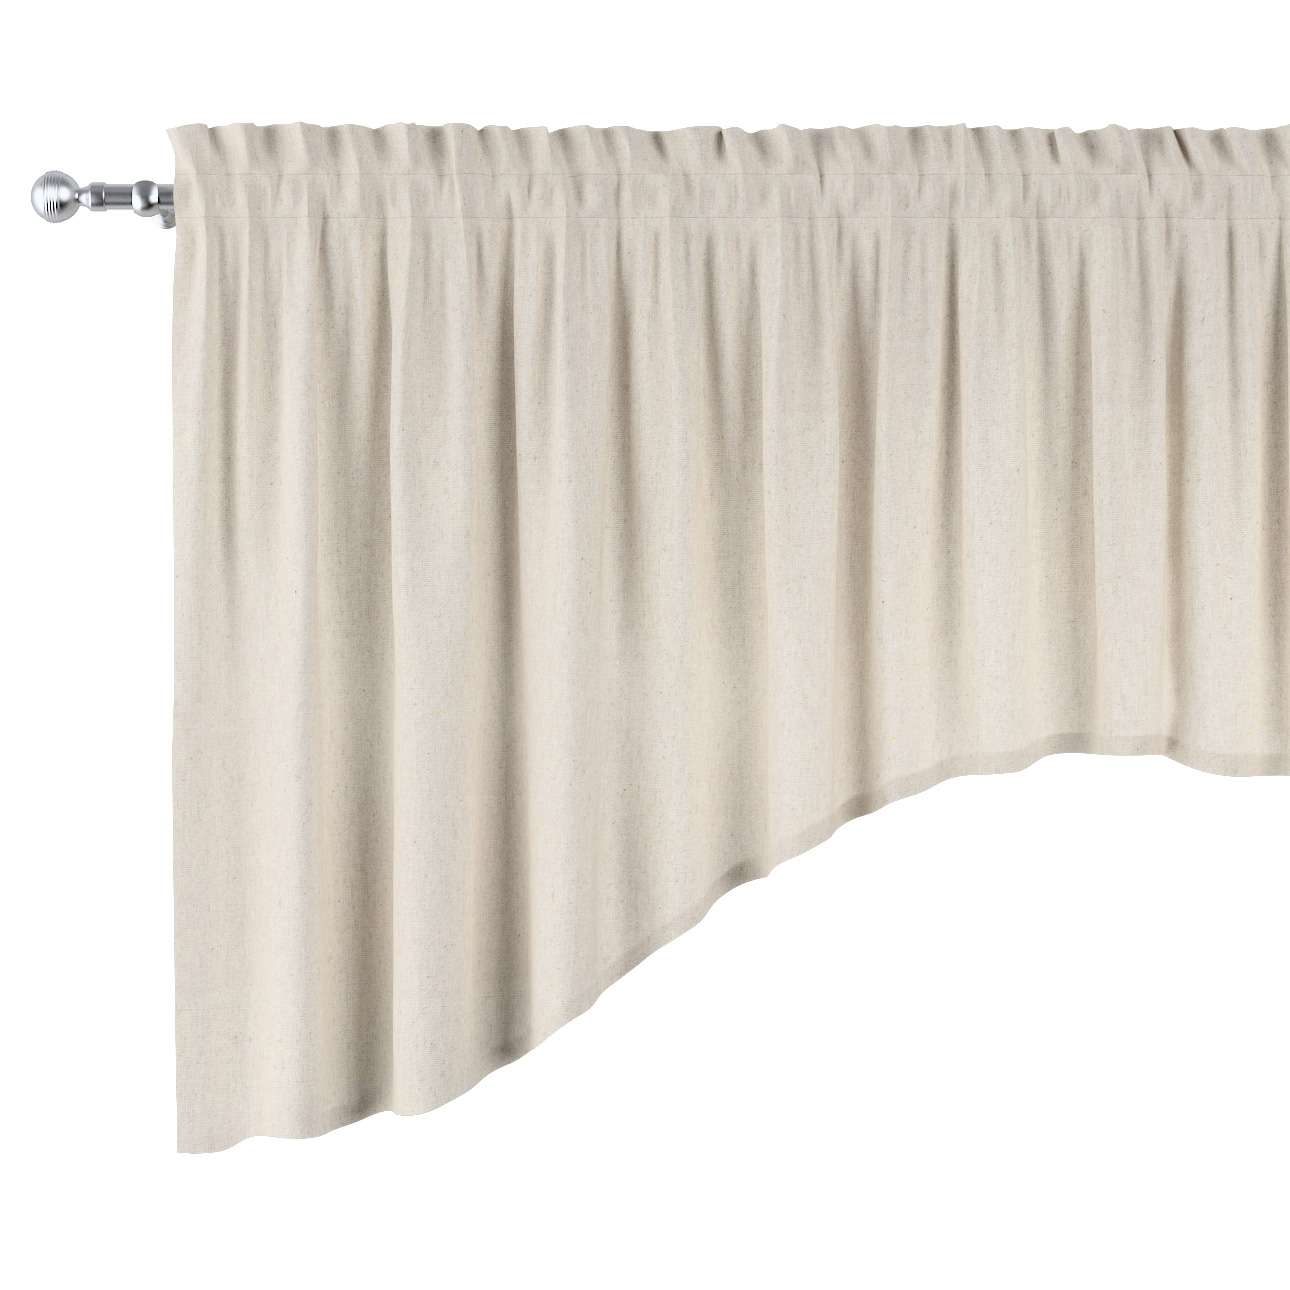 Bow lambrequin in collection Happiness, fabric: 133-65